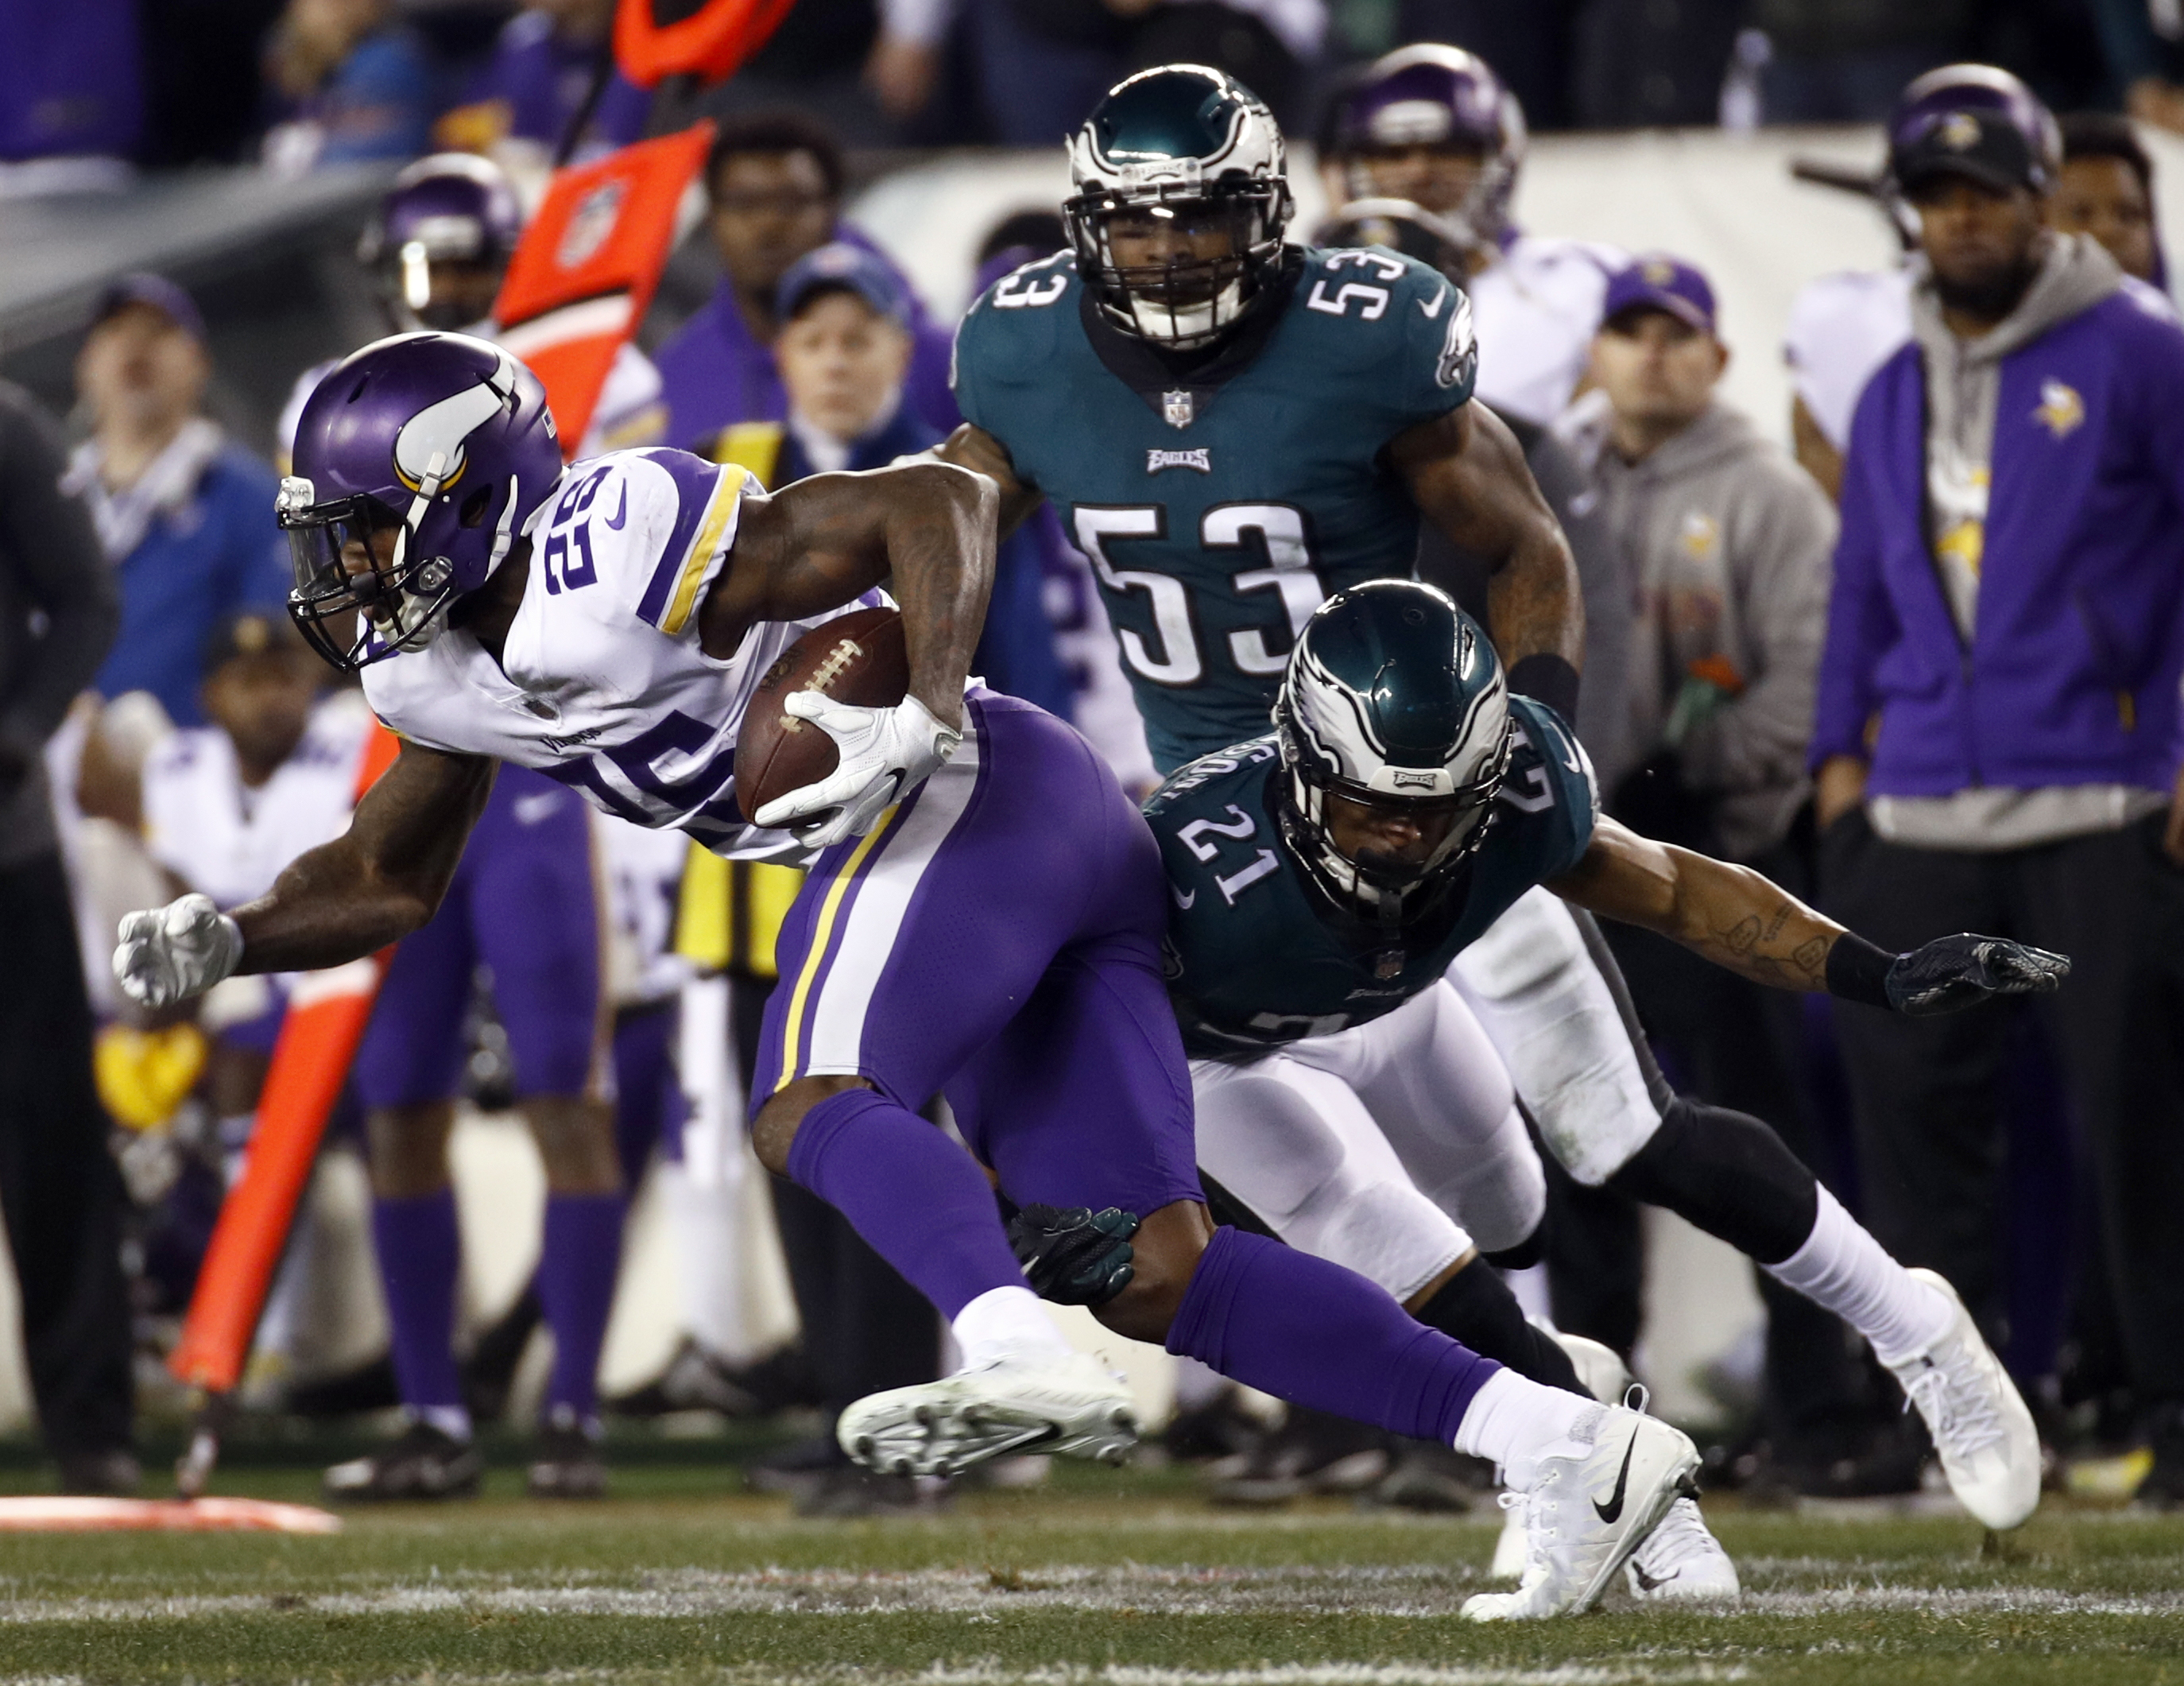 <div class='meta'><div class='origin-logo' data-origin='AP'></div><span class='caption-text' data-credit='AP Photo/Patrick Semansky'>Minnesota Vikings' Latavius Murray gets past Philadelphia Eagles' Patrick Robinson during the second half of the NFL football NFC championship game Sunday, Jan. 21, 2018.</span></div>